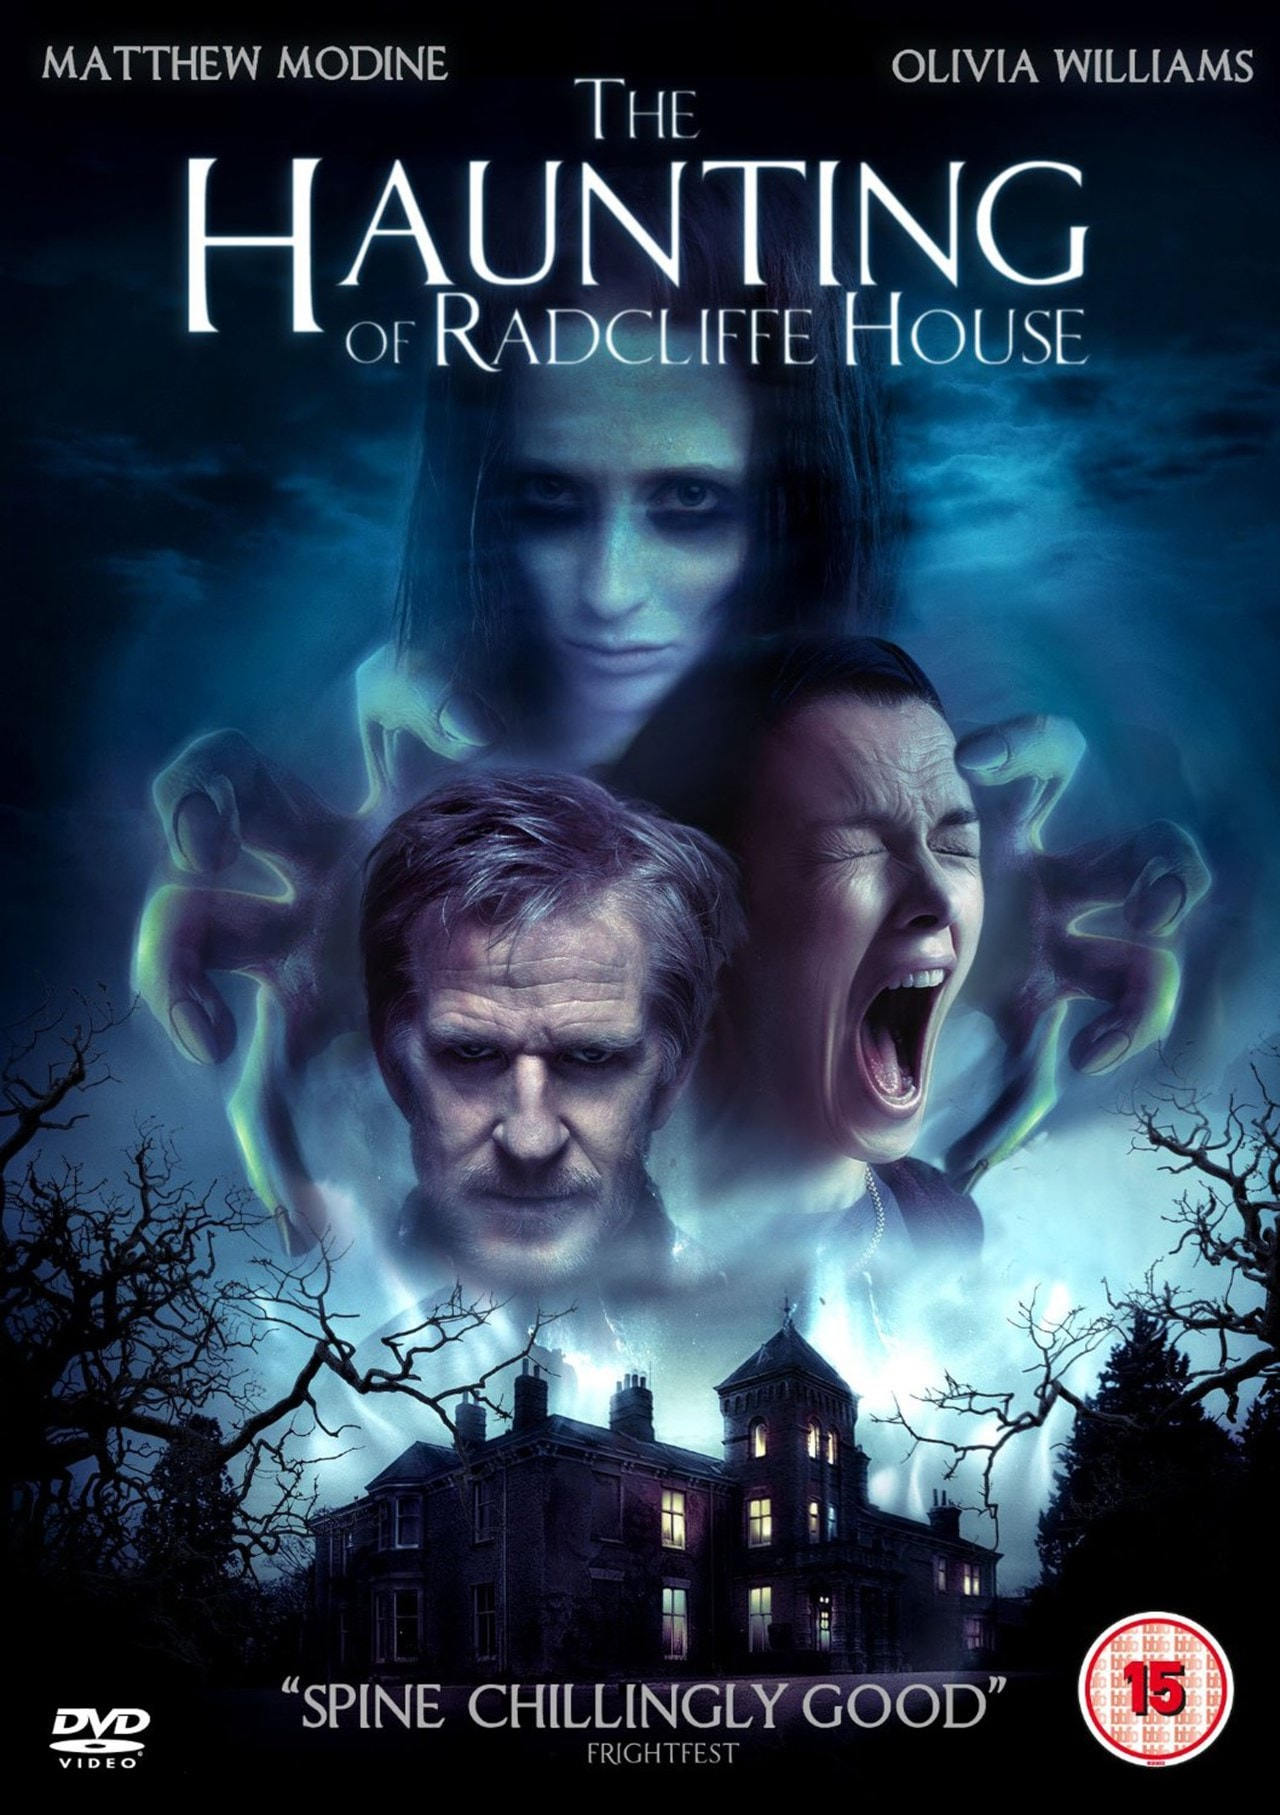 The Haunting of Radcliffe House - 1